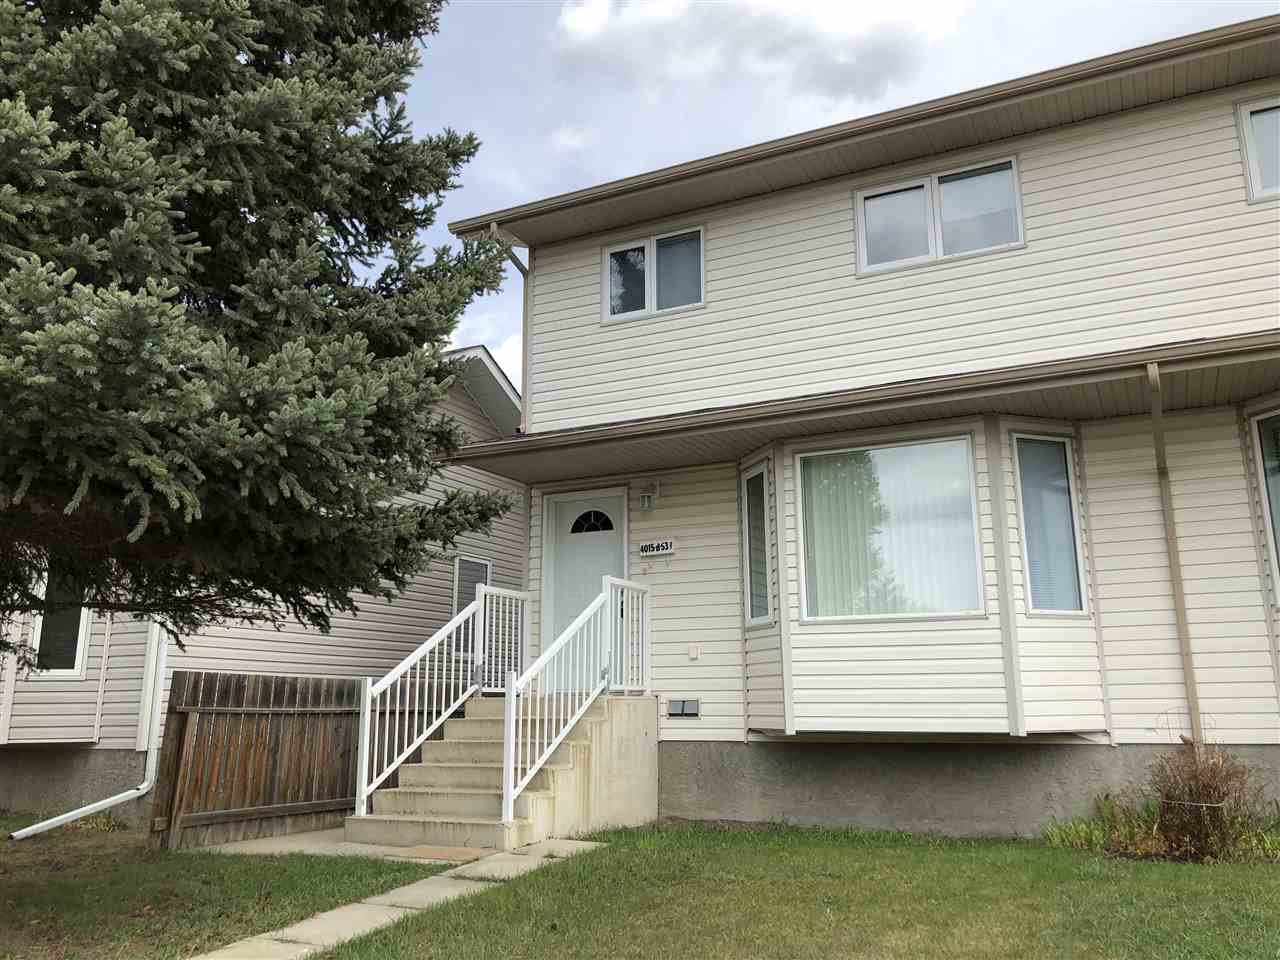 Main Photo: B 4015 53 Street: Wetaskiwin House Half Duplex for sale : MLS®# E4150614